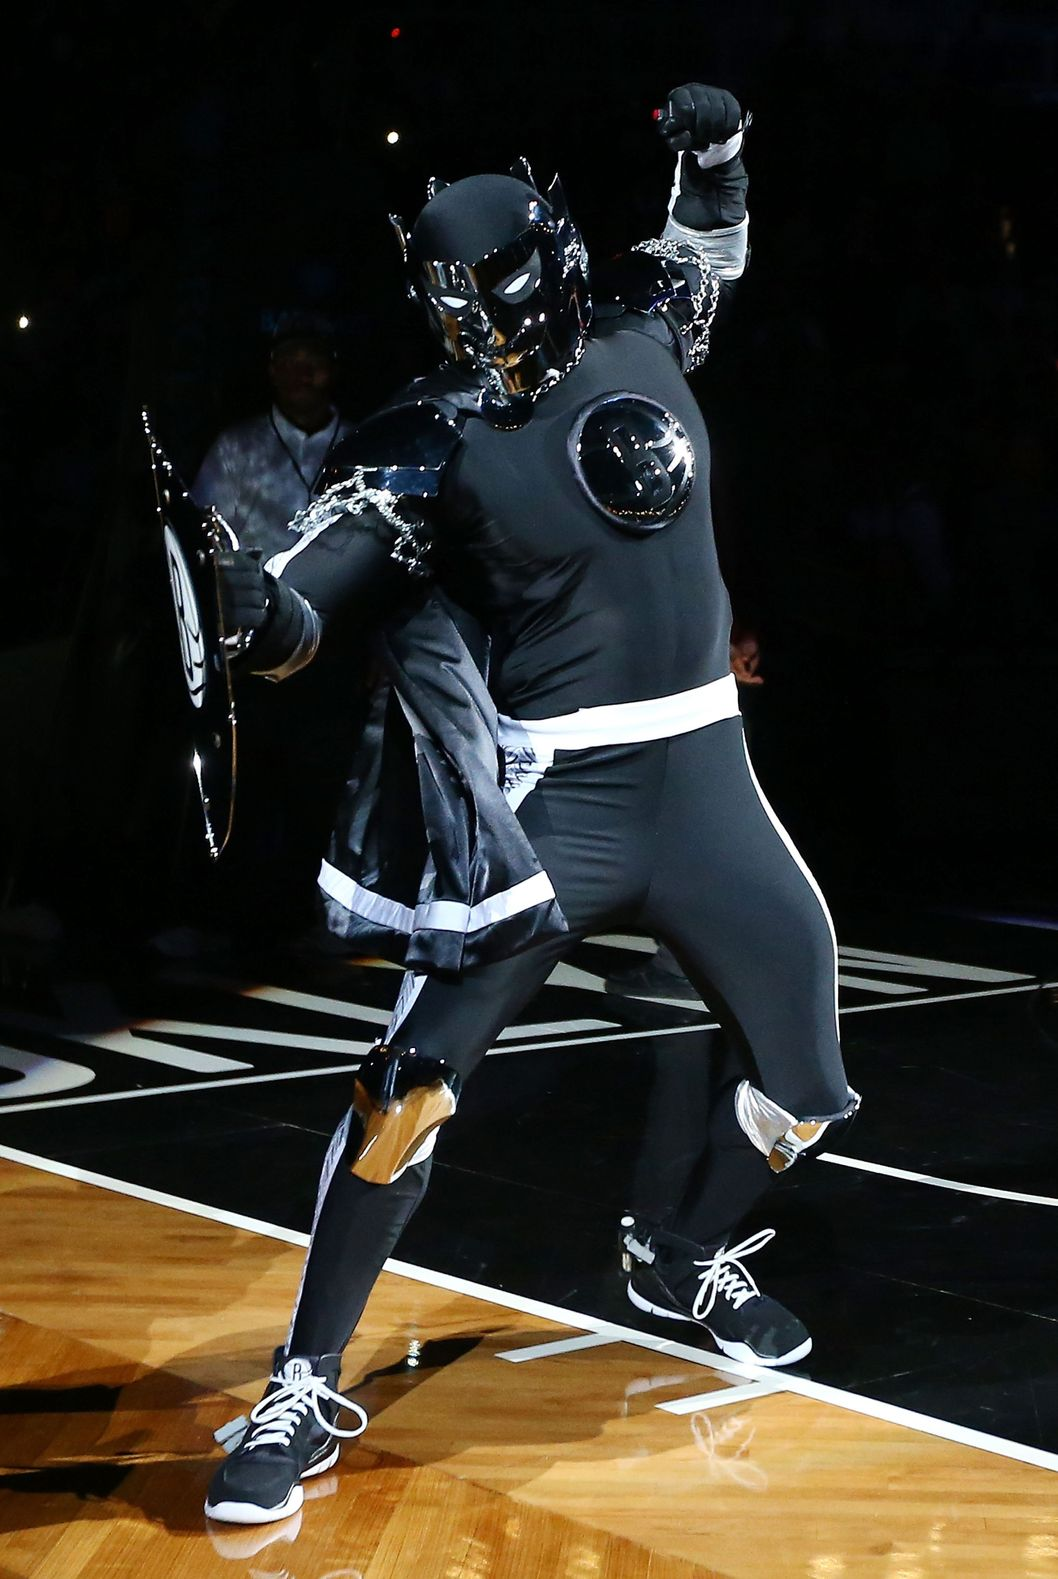 NEW YORK, NY - NOVEMBER 03:  (NEW YORK DAILIES OUT)  The 'Brooklyn Knight', mascot of the Brooklyn Nets , is introduced before a game against the Toronto Raptors at the Barclays Center on November 3, 2012 in the Brooklyn borough of New York City.The Nets defeated the Raptors 107-100 to win the first regular season game to be played at the new Barclays Center. NOTE TO USER: User expressly acknowledges and agrees that, by downloading and/or using this Photograph, user is consenting to the terms and conditions of the Getty Images License Agreement.  (Photo by Jim McIsaac/Getty Images)